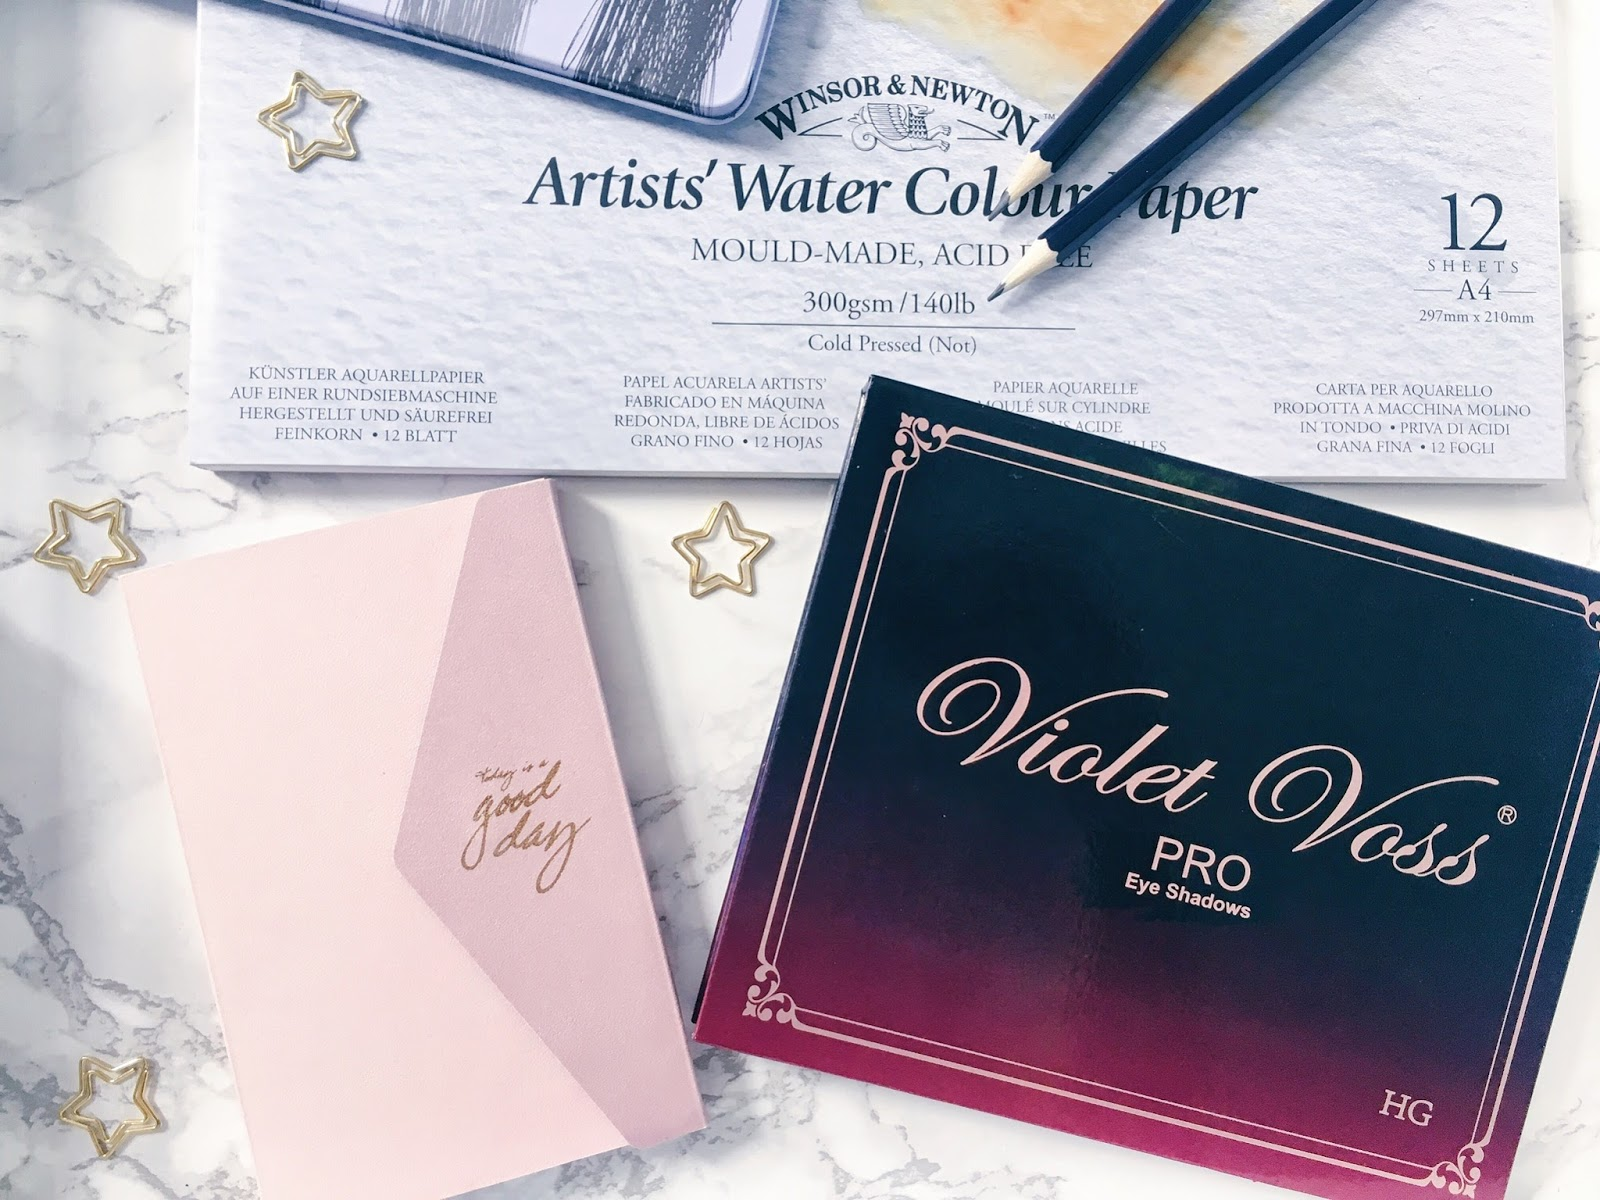 violet voss palette, planner, watercolour pad and star paperclips